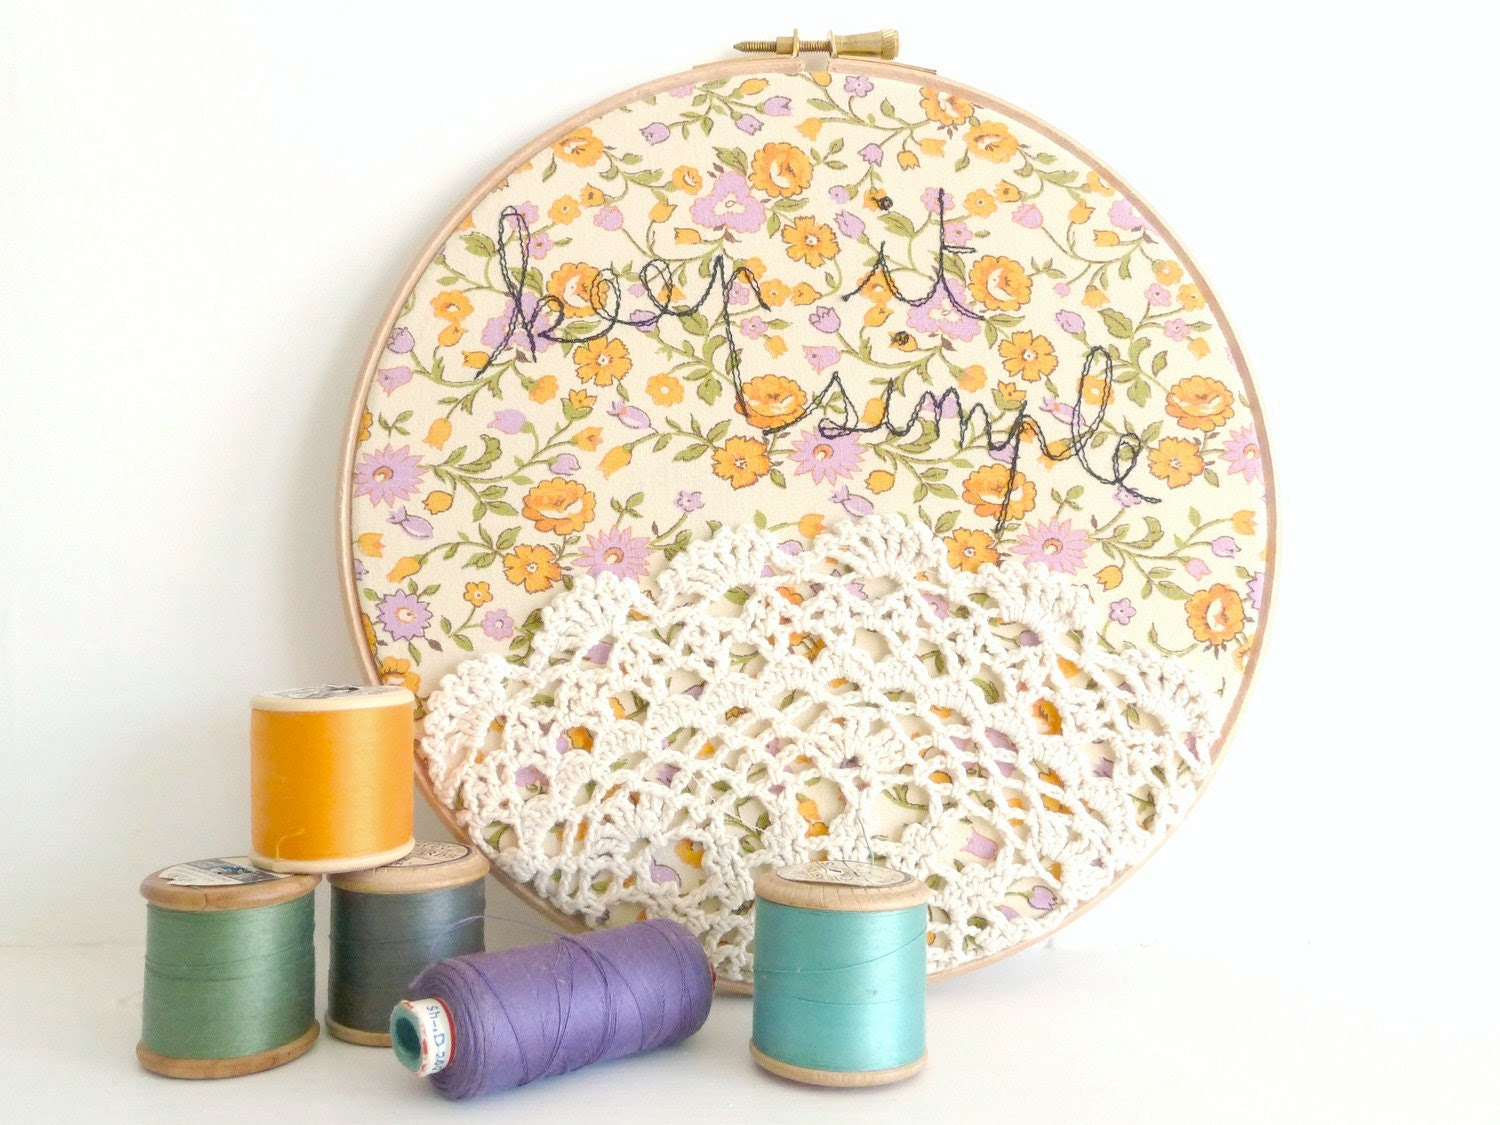 Doily Wall Art Embroidery Hoop 'Keep it simple' by ThreeRedApples